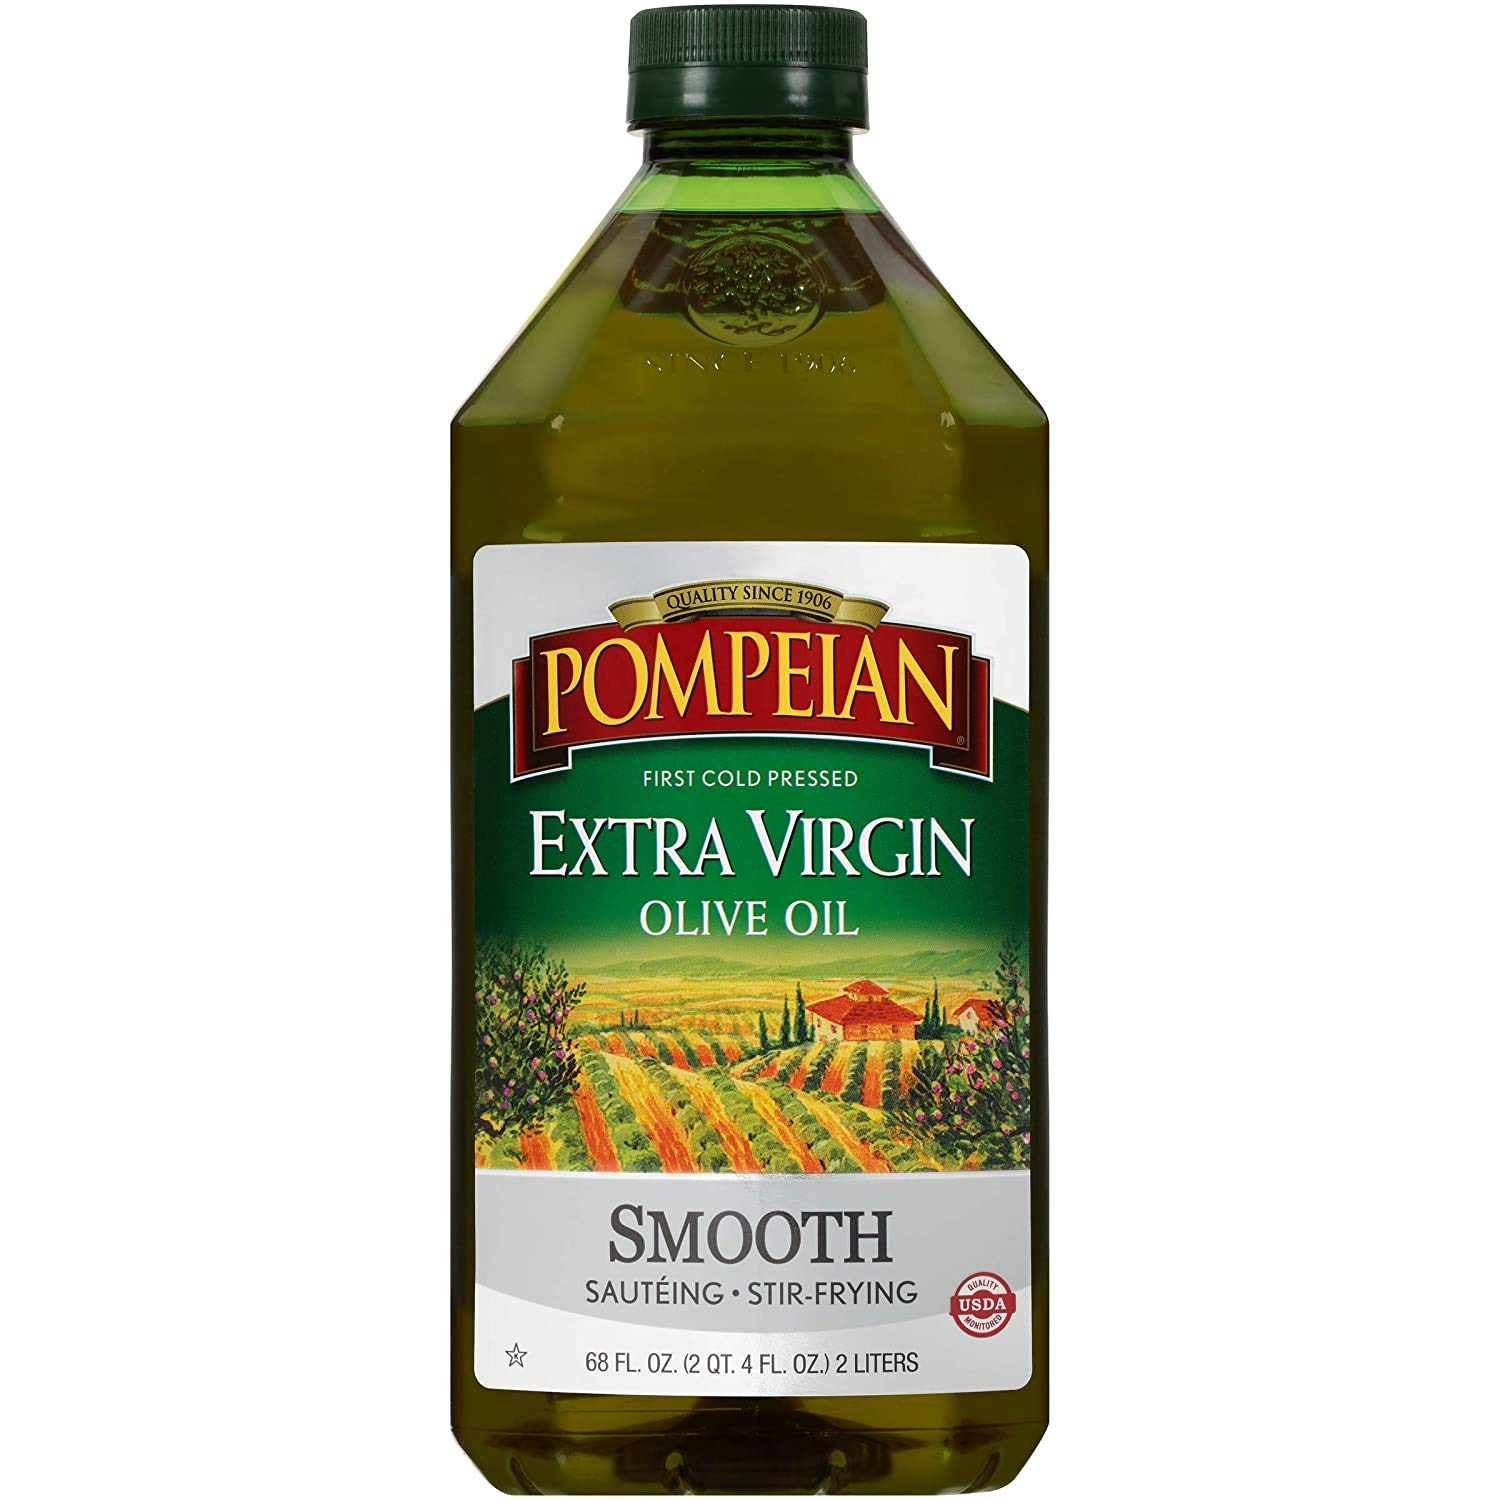 Pompeian First Cold Pressed Extra Virgin Olive Oil